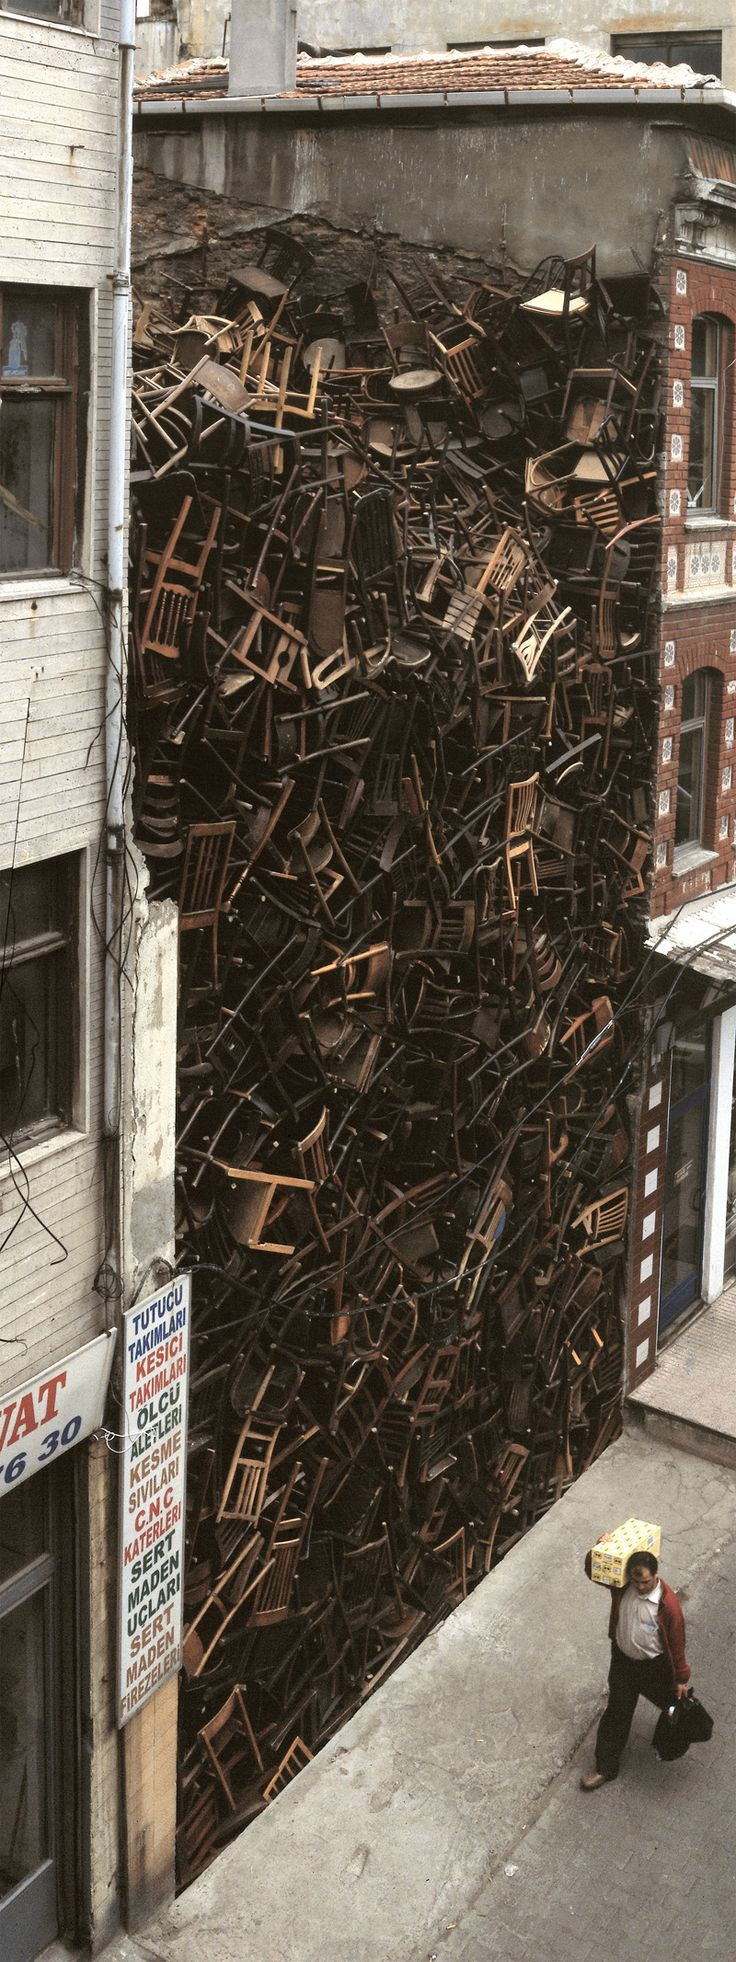 Doris Salcedo. 1,550 wooden chairs piled high between two buildings in central Istanbul. -wtf?? Why lol